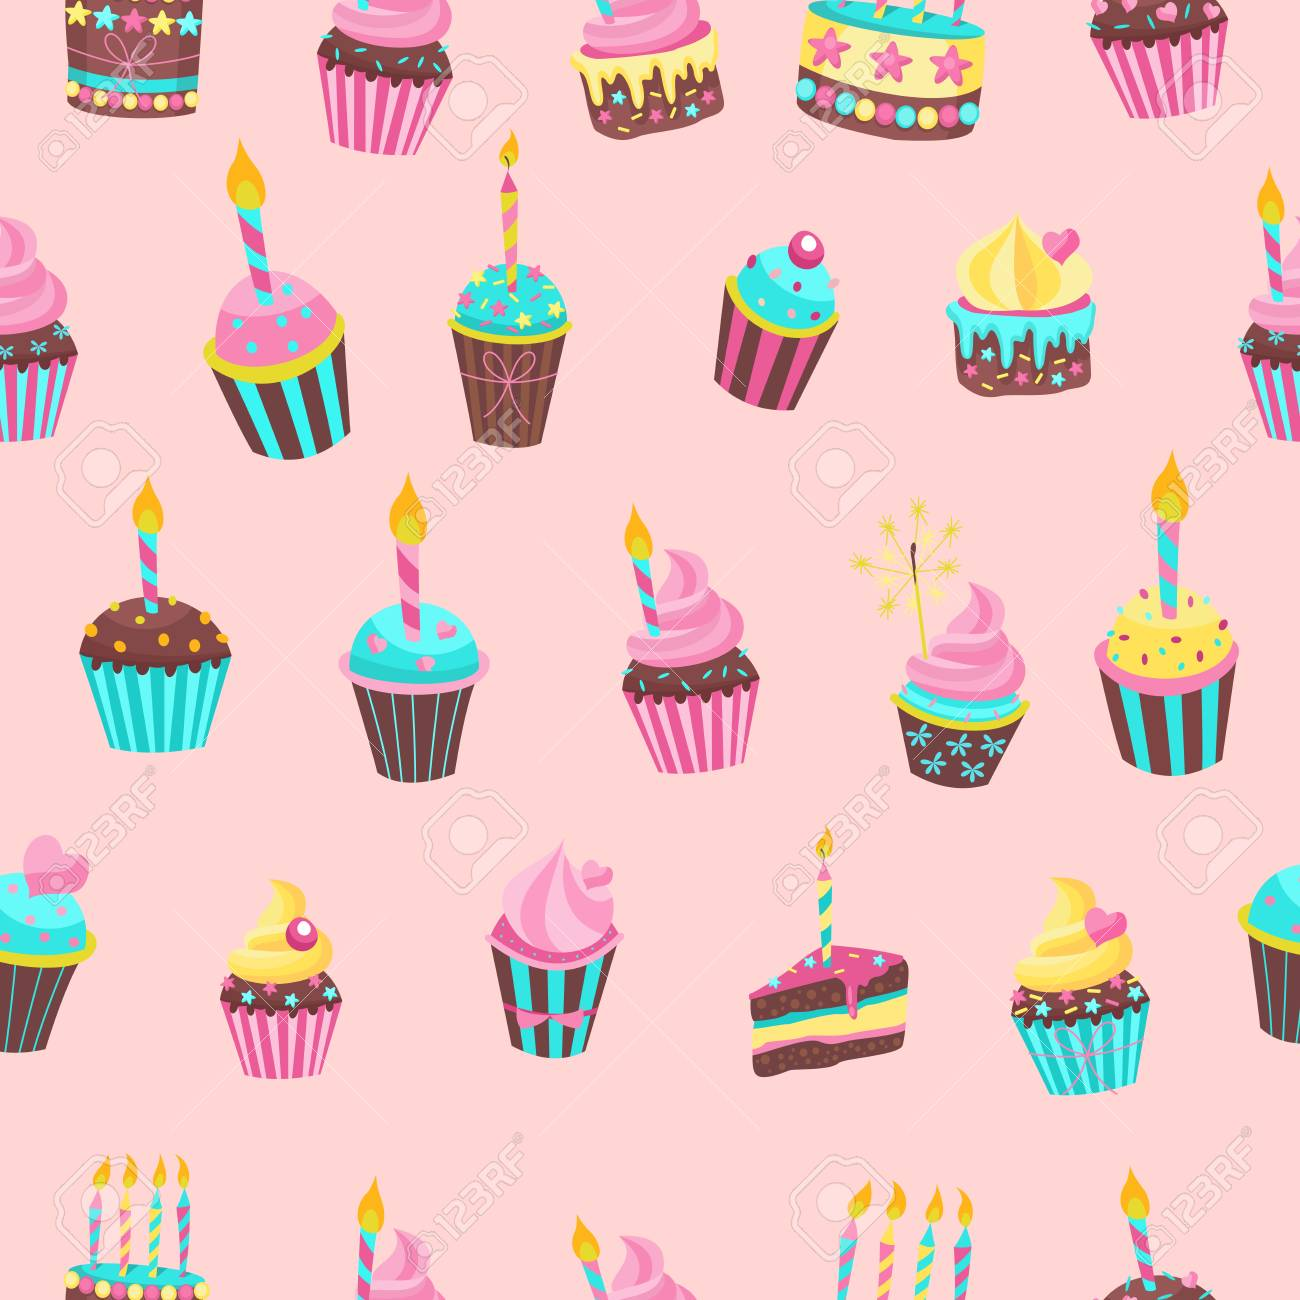 Beautiful Cute Birthday Cakes With Candles For Printing On Textiles Paper